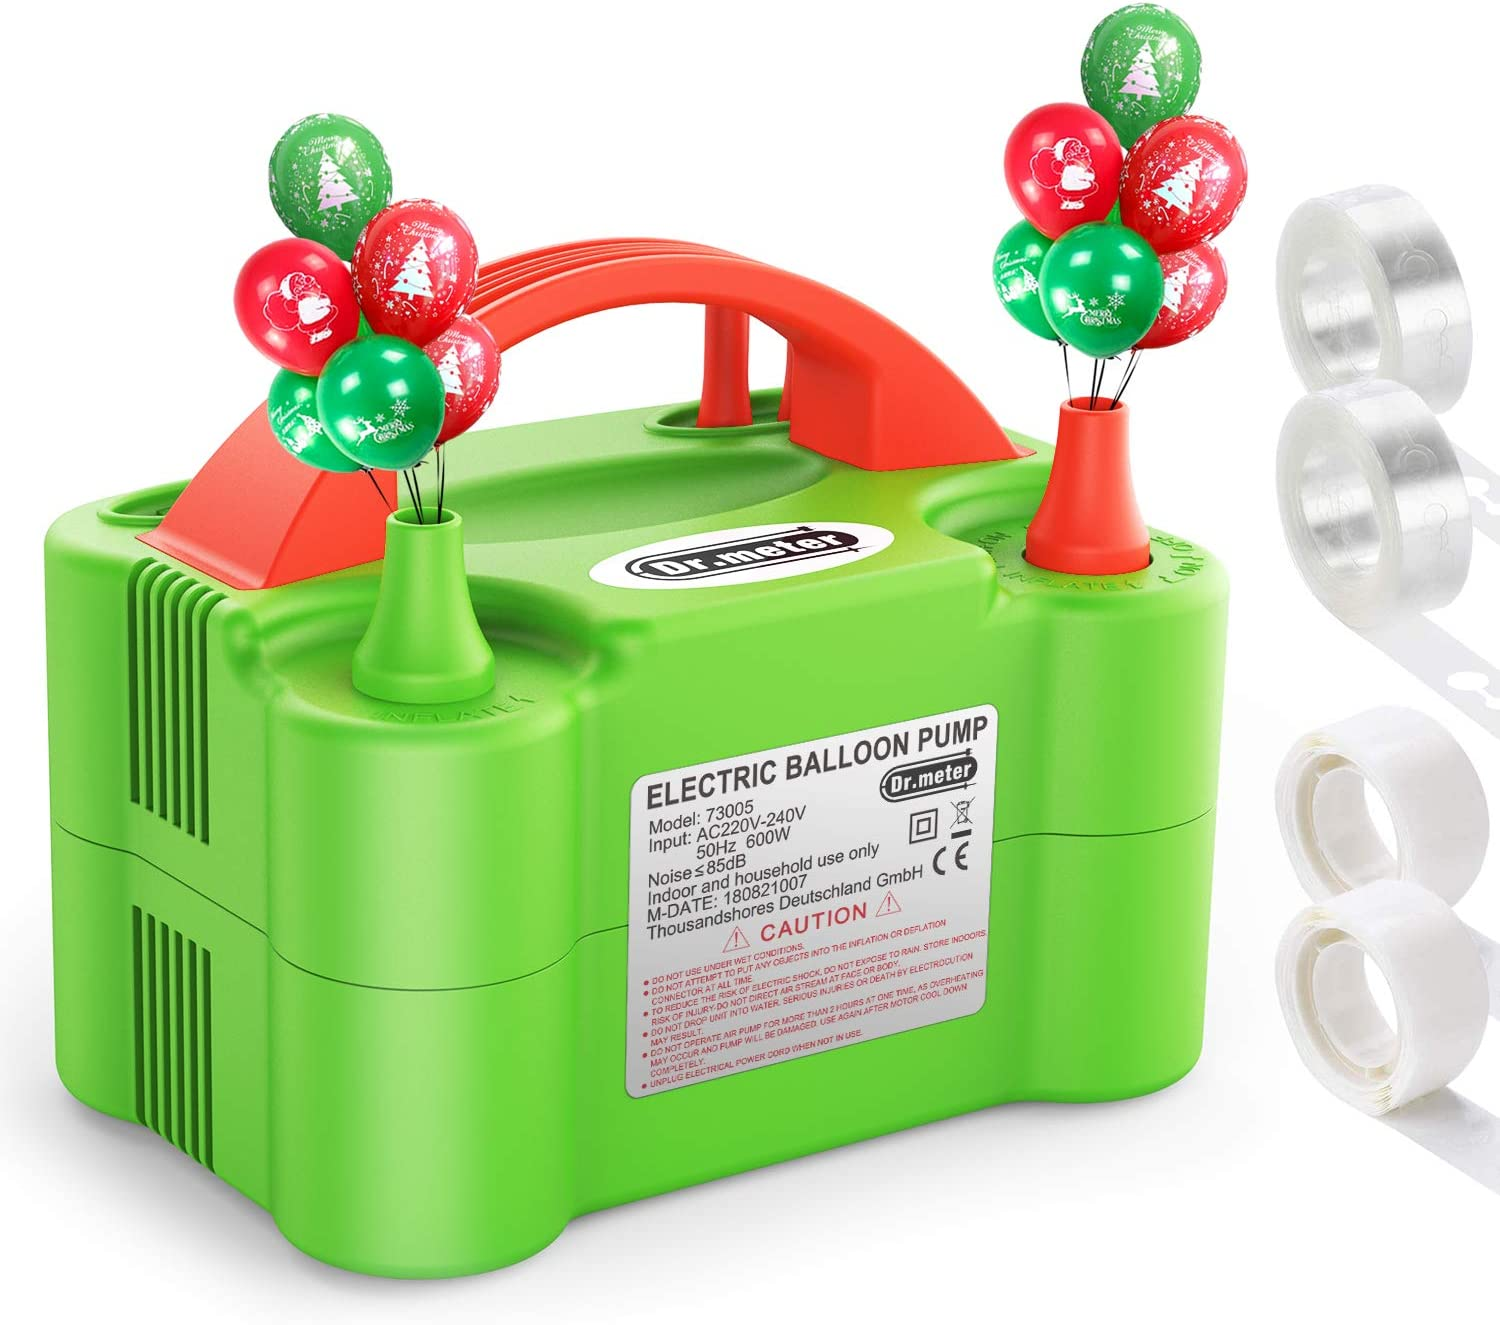 Dr.meter Balloon Pump, 110V 600W Portable Christmas Decorations Electric Air Balloons Pump with Dual Nozzle Blower/Inflator for Party Decoration/Halloween/Wedding/Birthday/Sport/Christmas, Green: Home & Kitchen